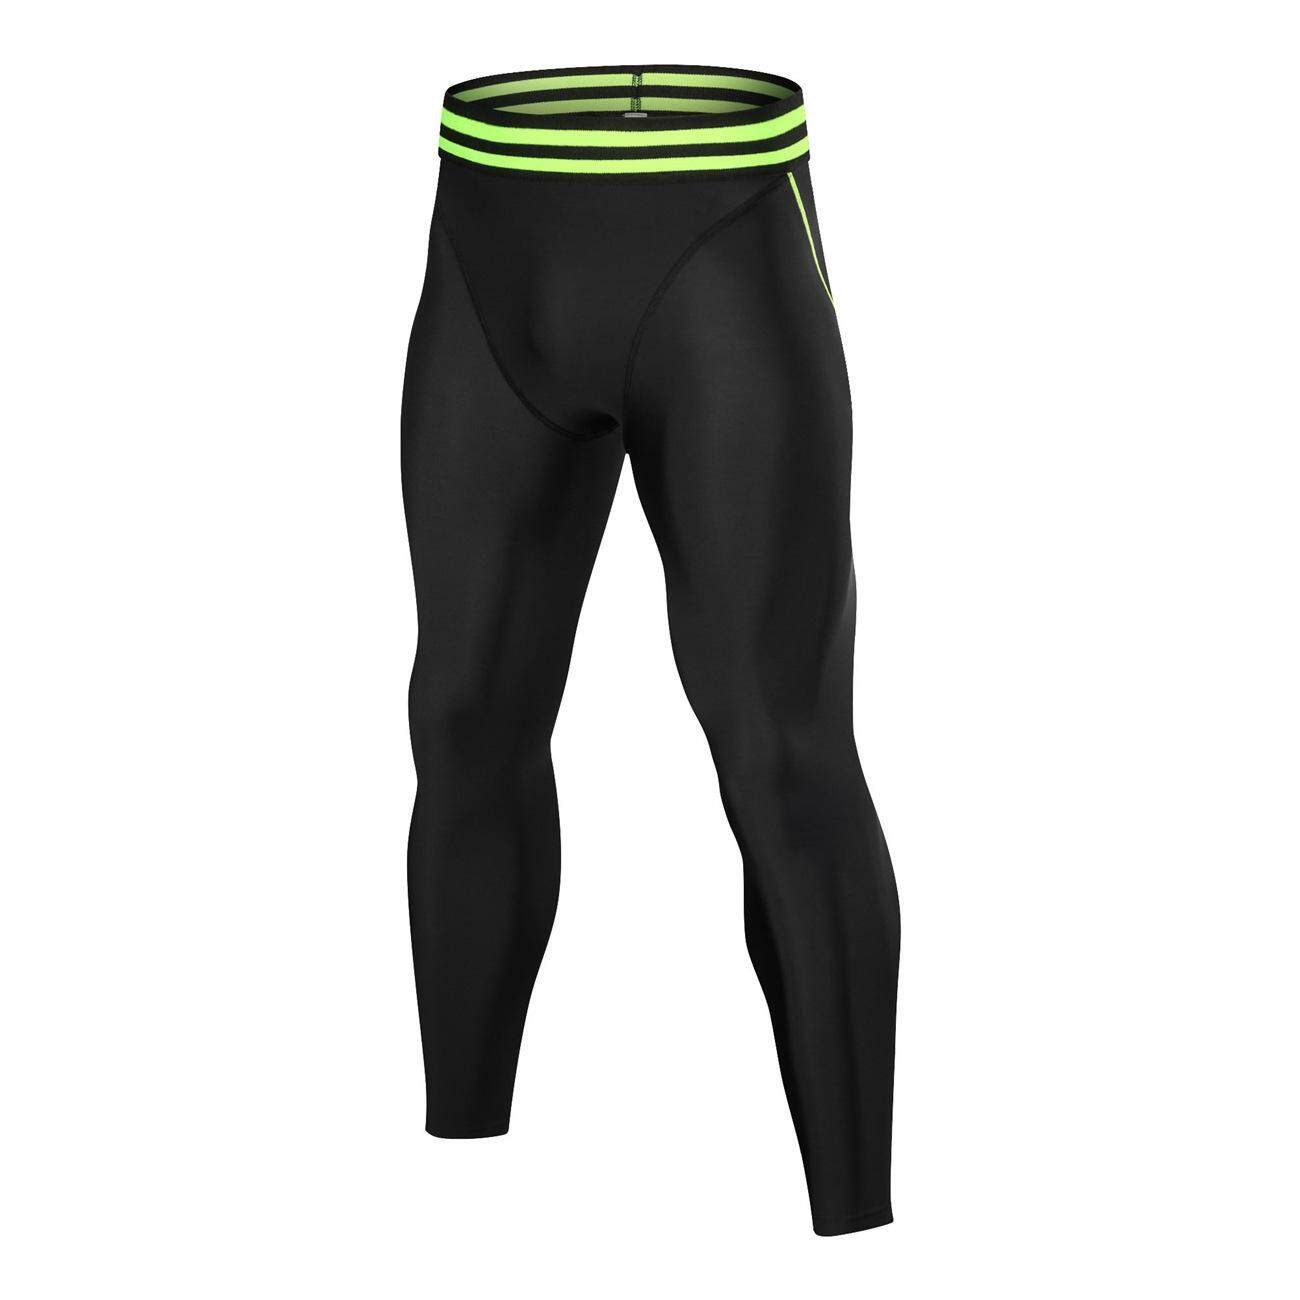 Quick Drying Pants Male Tights Warm Fitness Basic Stretch Pants Training Running Movement Trousers By Wellsunny.